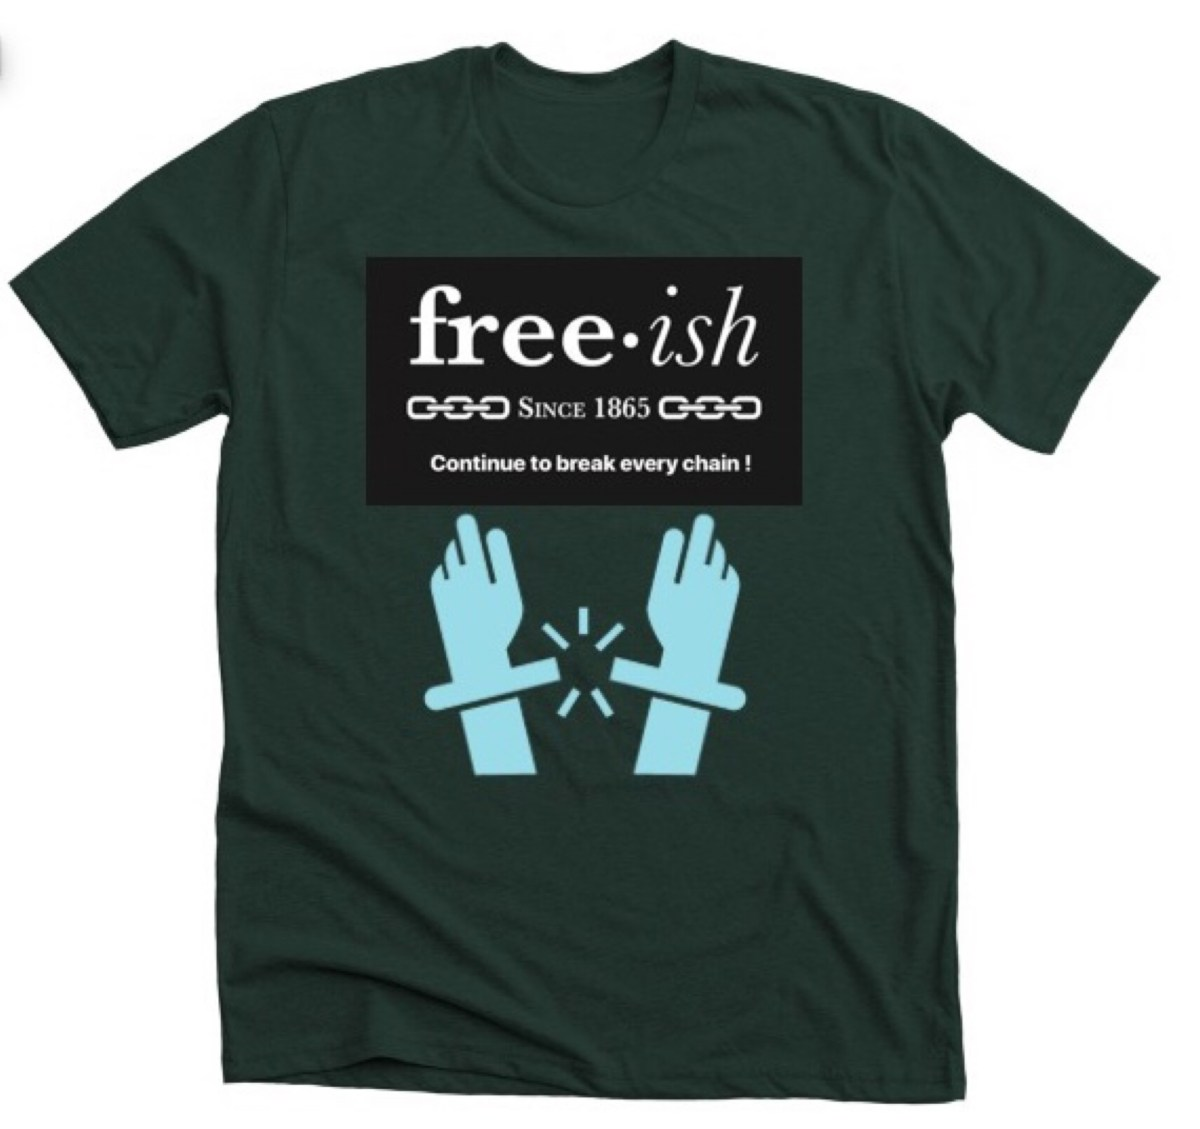 Freeish • Premium design T-shirt